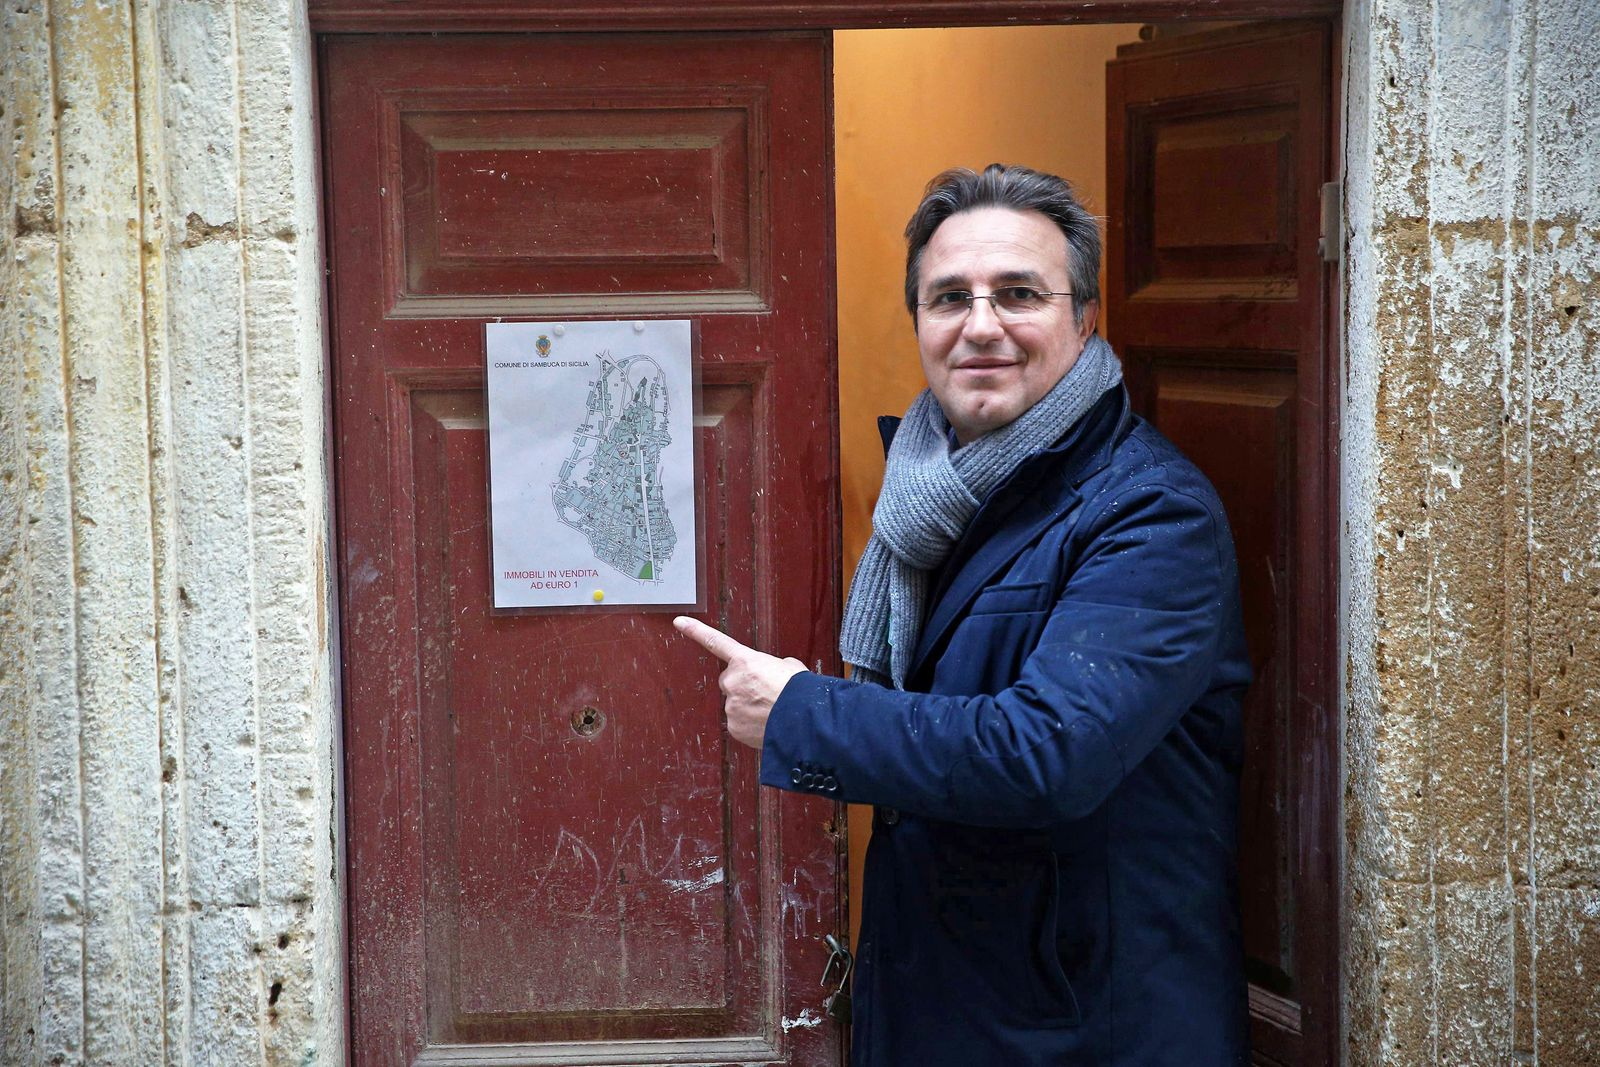 Italy, Sambuca di Sicilia (Sicily): Crowd of buyers - especially foreigners - flocked in Sambuca di Sicilia after mayor Leo Ciaccio has put up empty houses for sale at 1 Euro in the hope of saving the town from depopulation